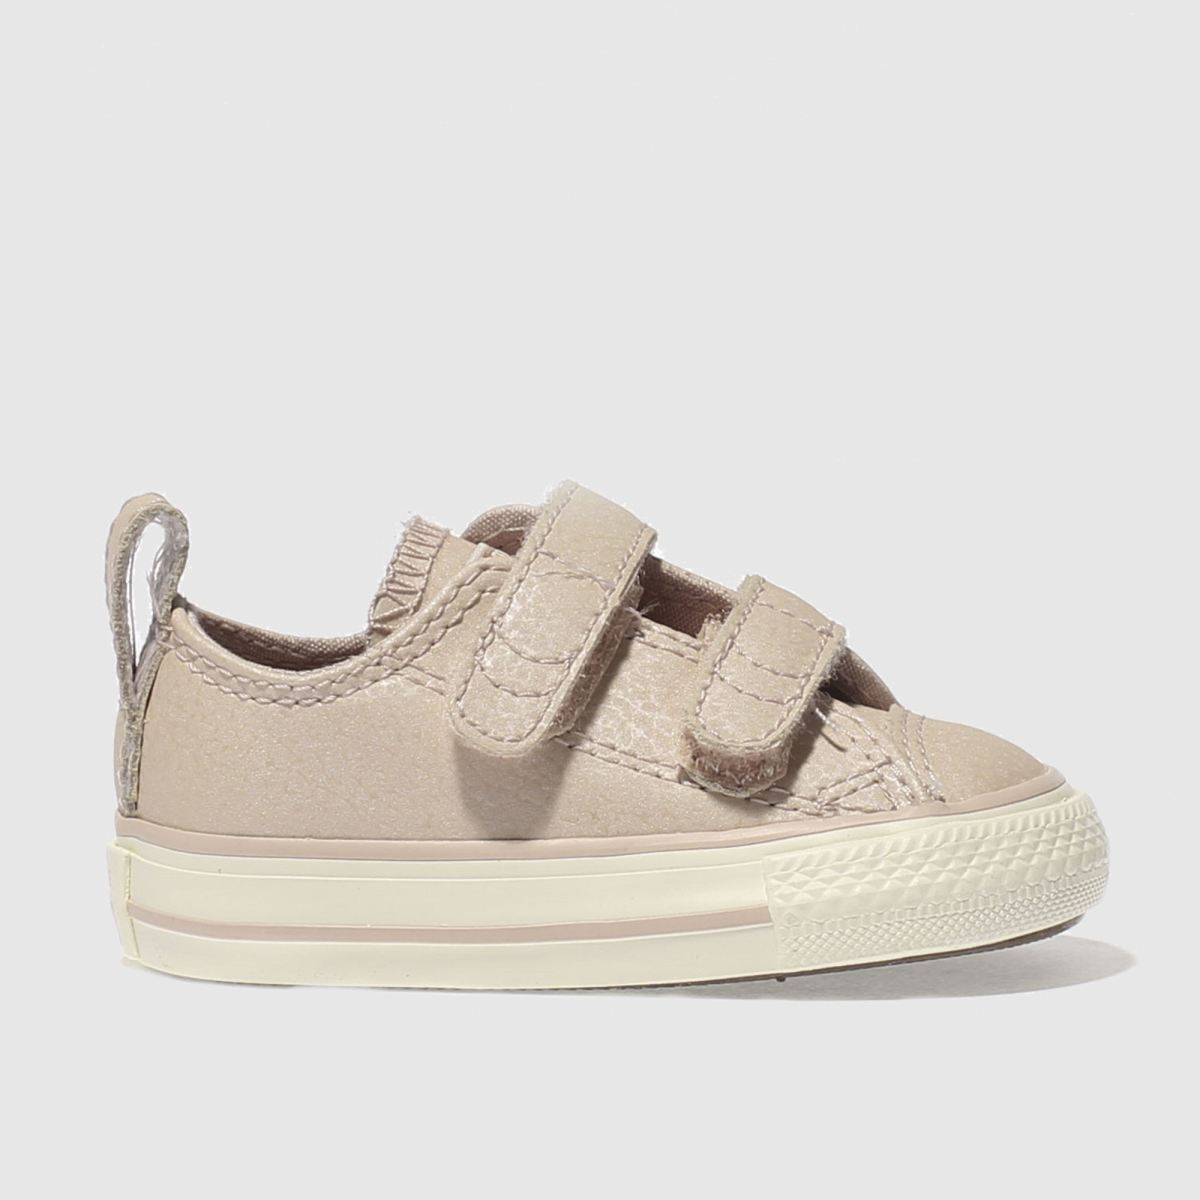 Converse Pale Pink Al Star Lo 2v Girls Toddler Trainers